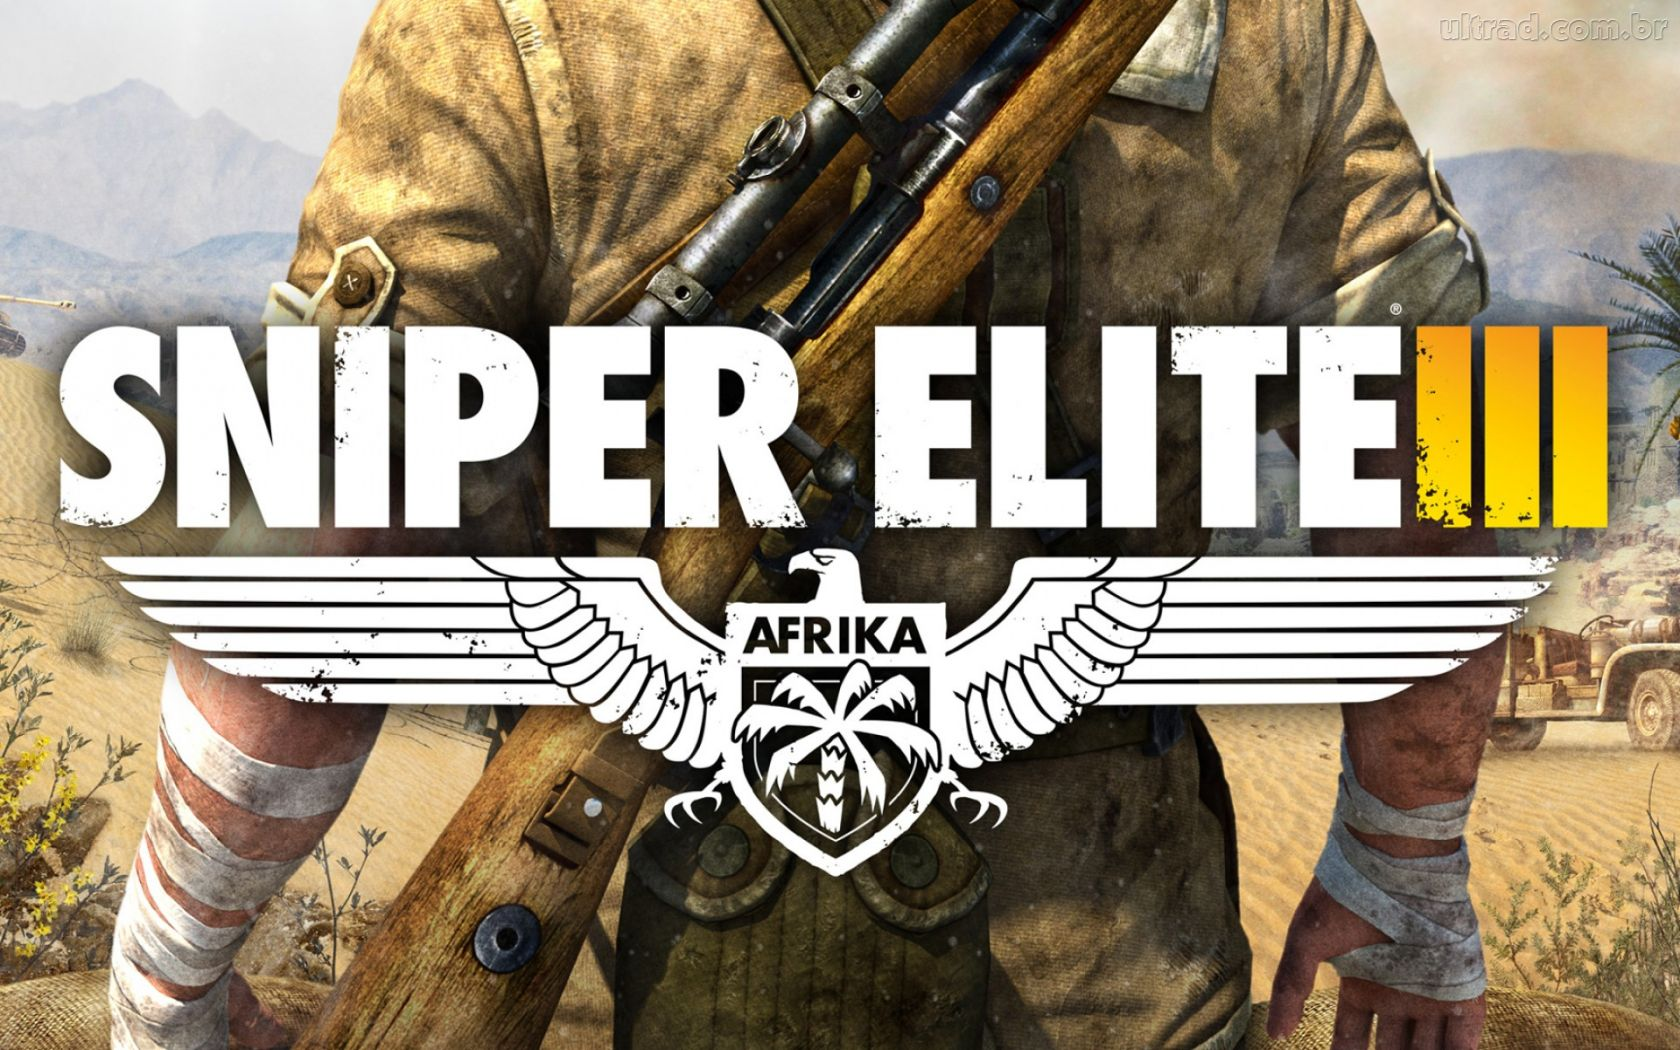 Sniper Elite III On PS4 Check Out The First 15 Minutes Of Direct Feed 1080p Gameplay DualShockers